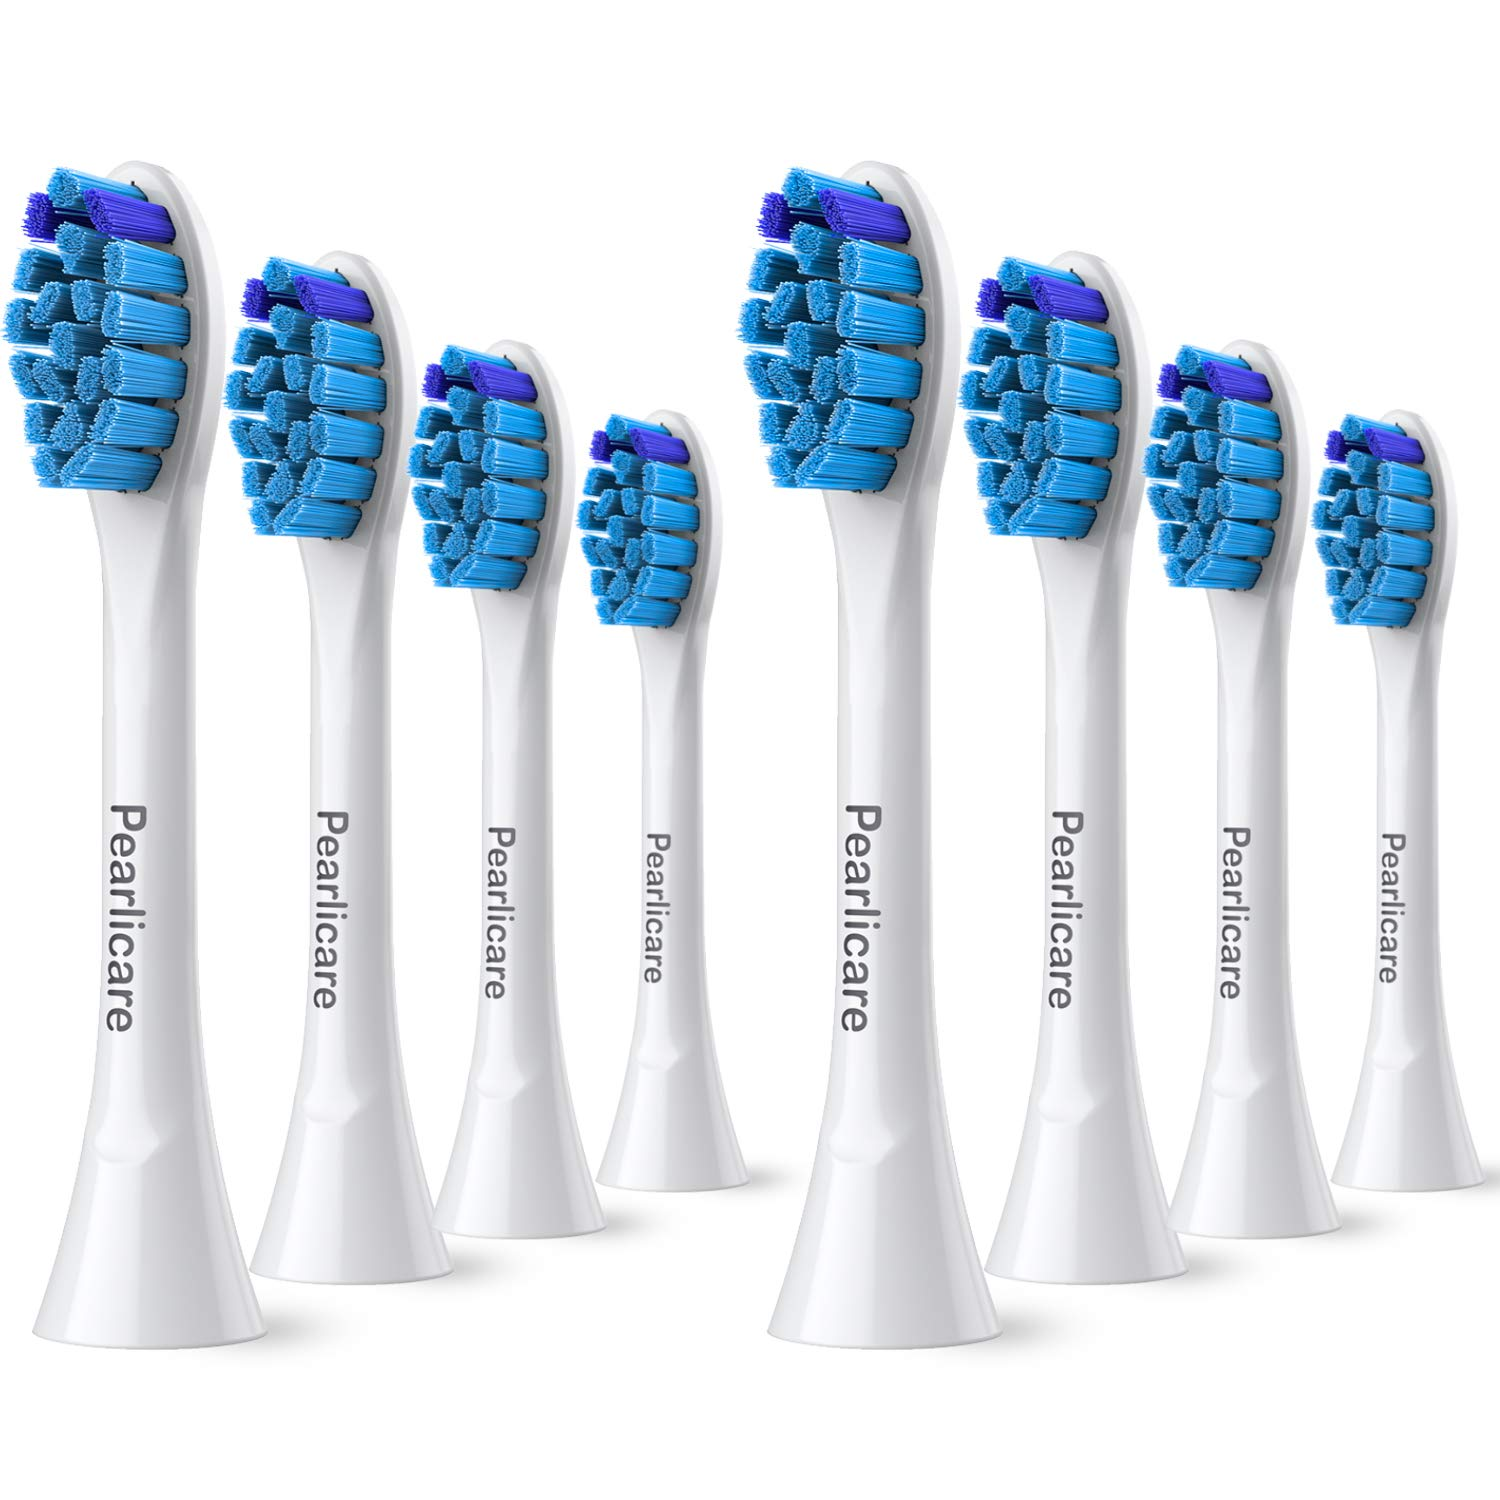 Pearlicare Replacement Brush Heads (8 Pack) - Compatible With Phillips Sonicare Gum Health Electric Toothbrush, 2 Series, 3 Series, Flexcare, DiamondClean, Plaque Control, ProResults, HealthyWhite